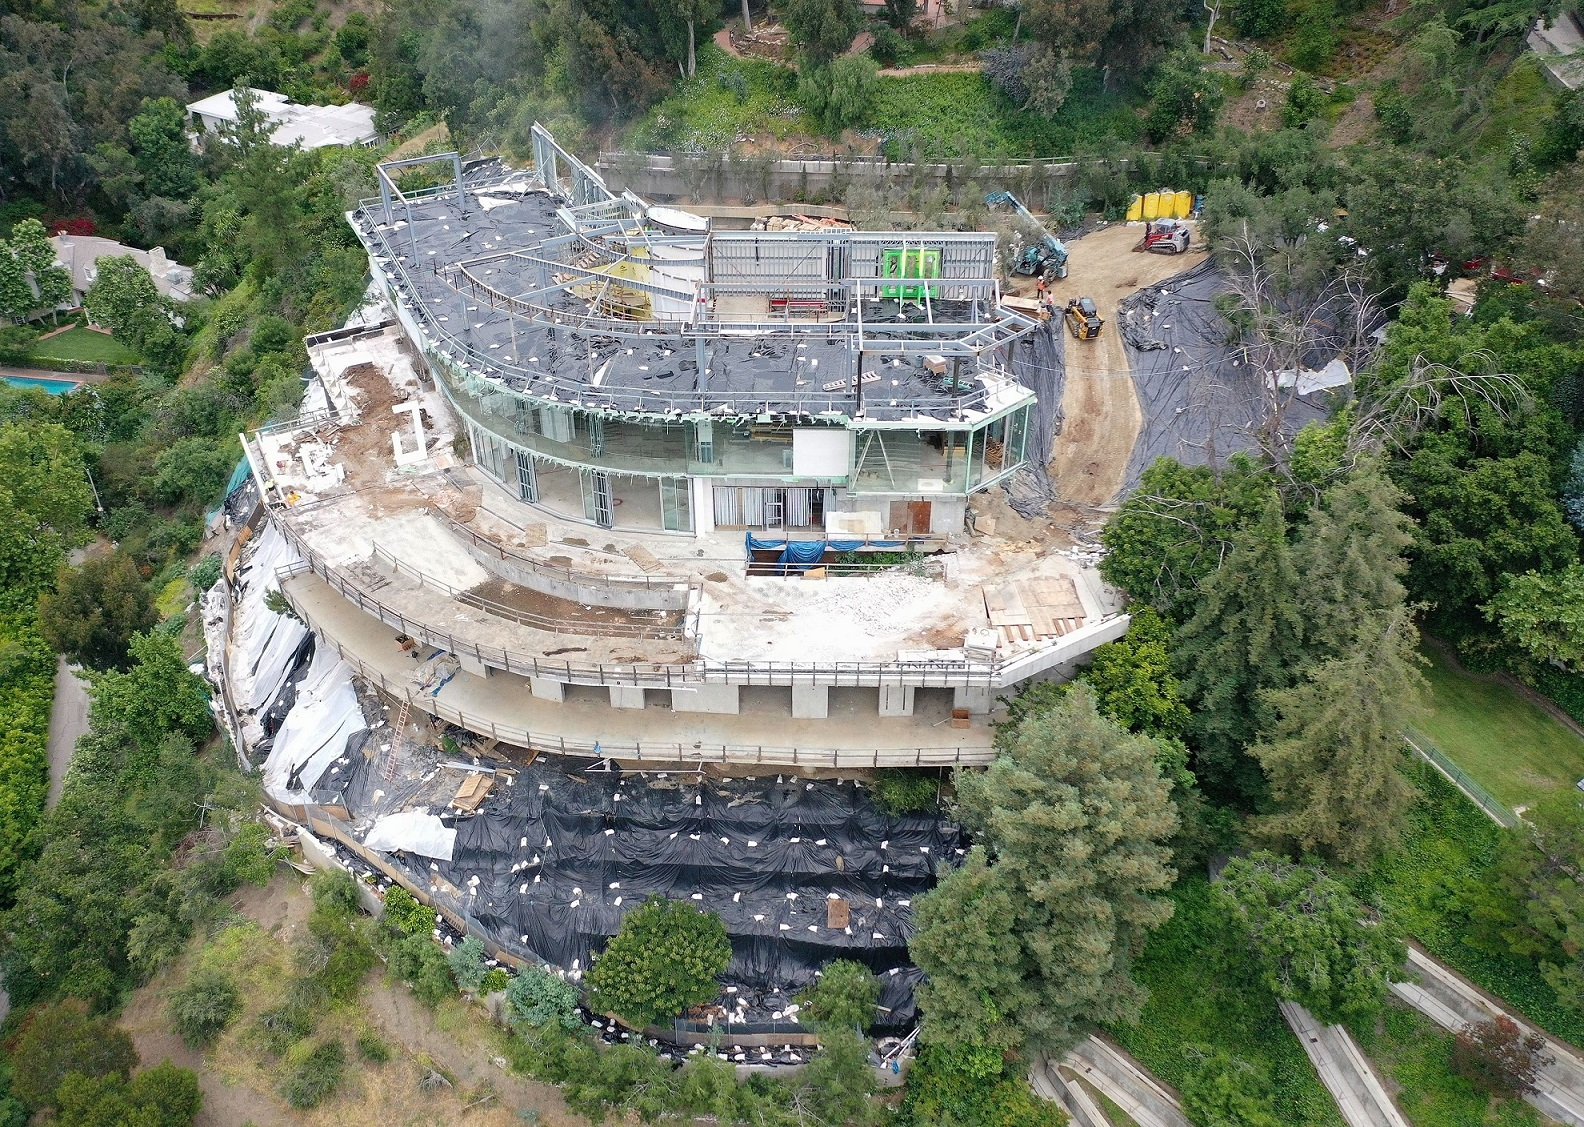 EXCLUSIVE: Mohamed Hadid starts to tear down his Bel Air mega Mansion!